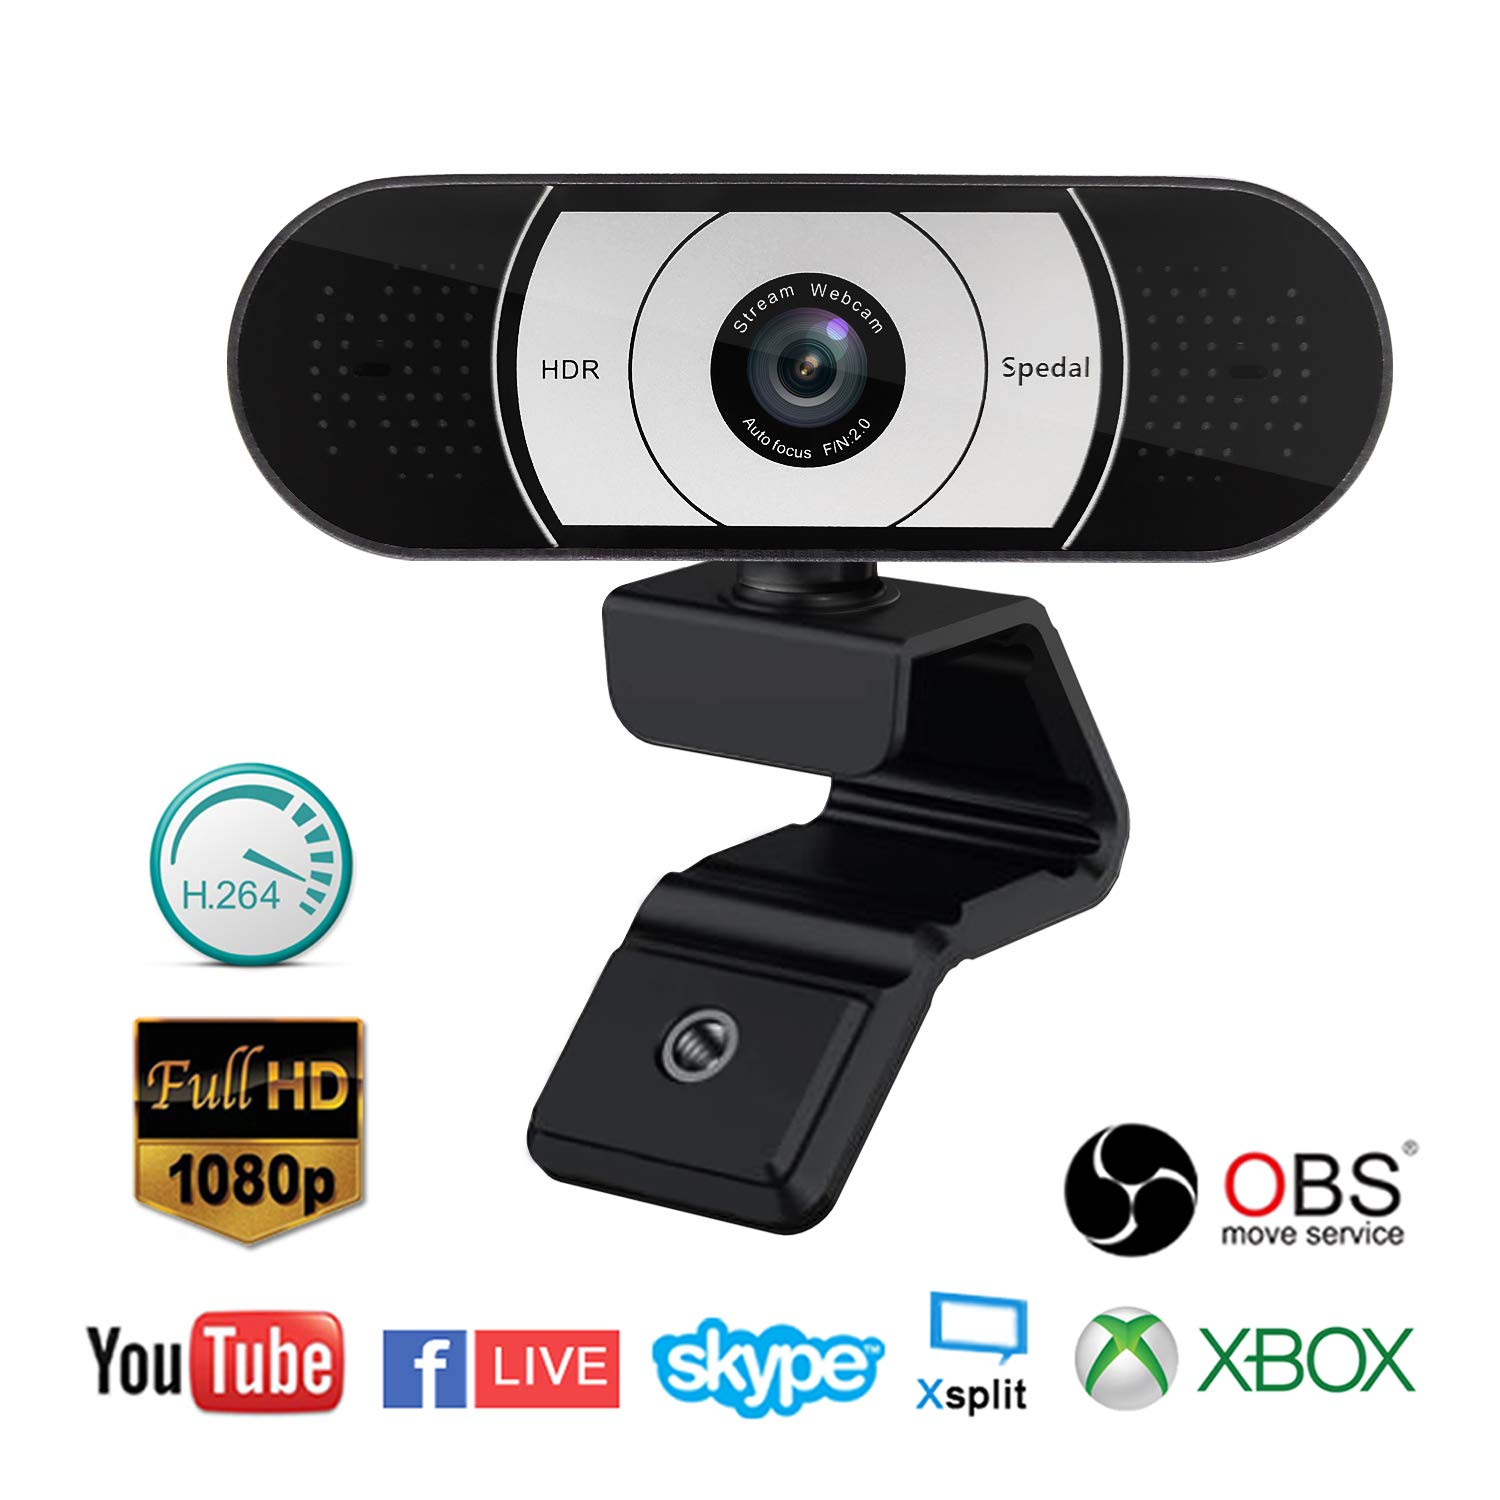 Spedal Pro Stream Webcam 1080P, Auto Focus Game Streaming, Computer Laptop  Camera for OBS Xbox XSplit Skype Facebook, Compatible for Linux Mac OS